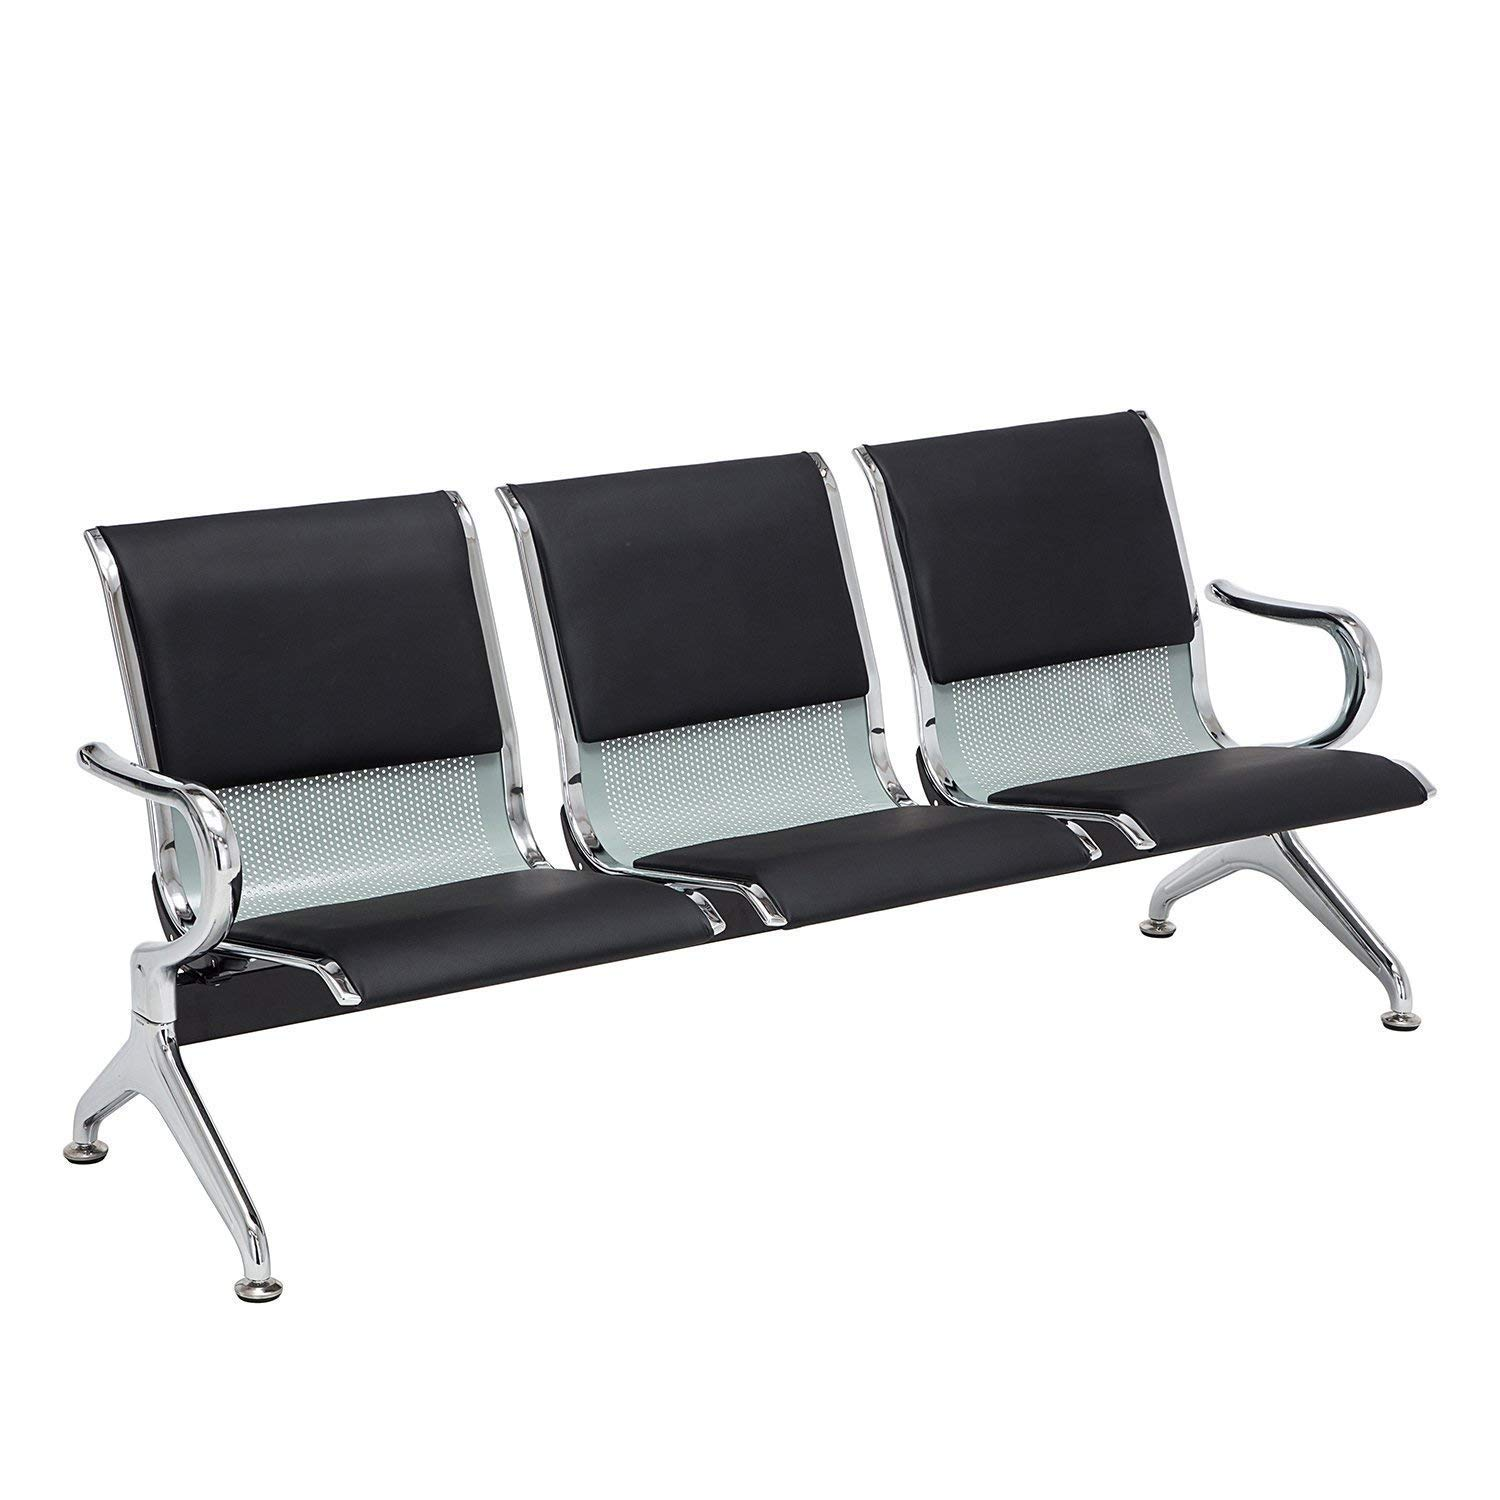 Kintness PU Leather 3-Seat Reception Bench Waiting Room Chair Airport Garden Salon Barber Guest Bench Black by Kintness